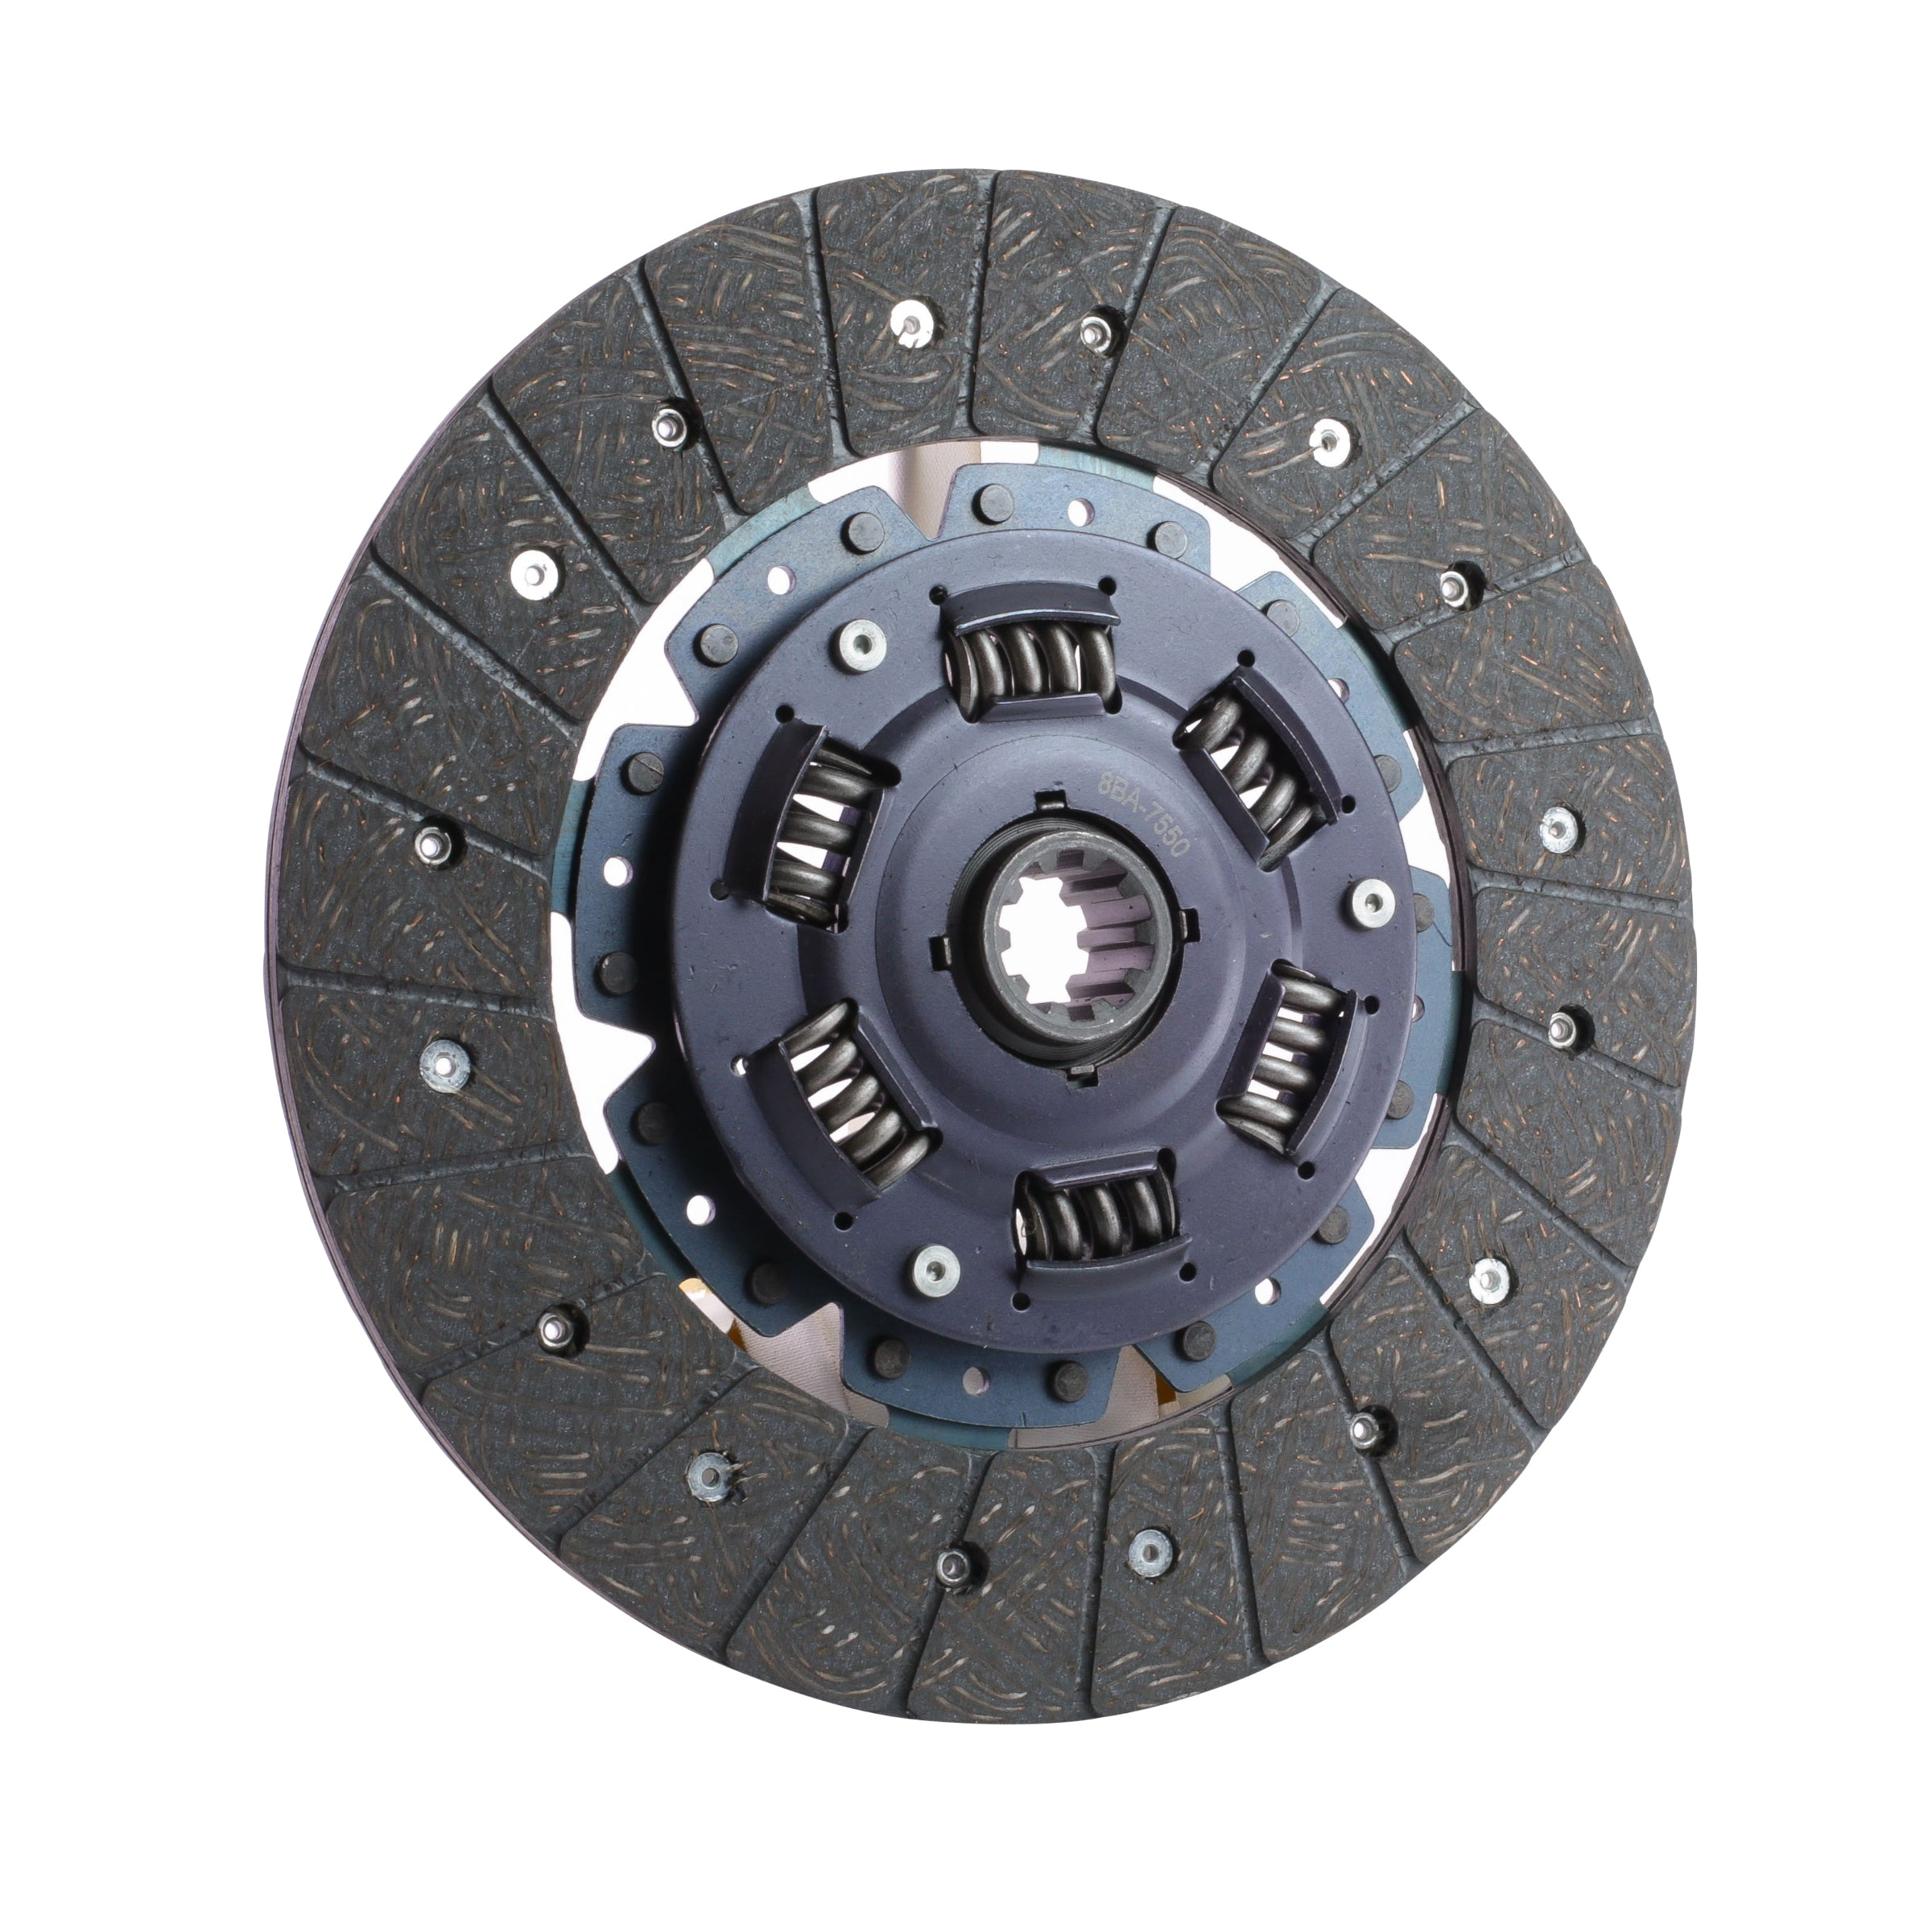 New Clutch Disc • 9.5